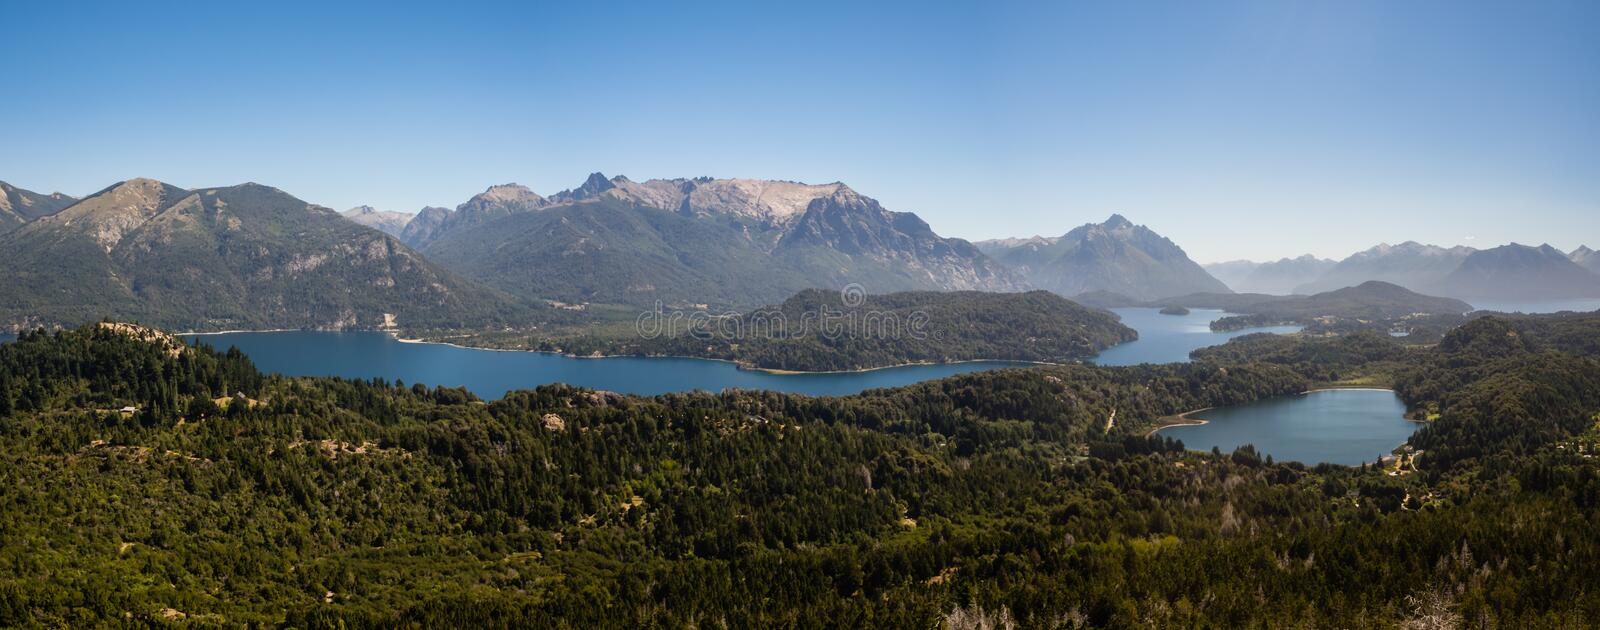 Panoramic of the lakes, mountains and forest near Bariloche city in argentinian Patagonia royalty free stock images